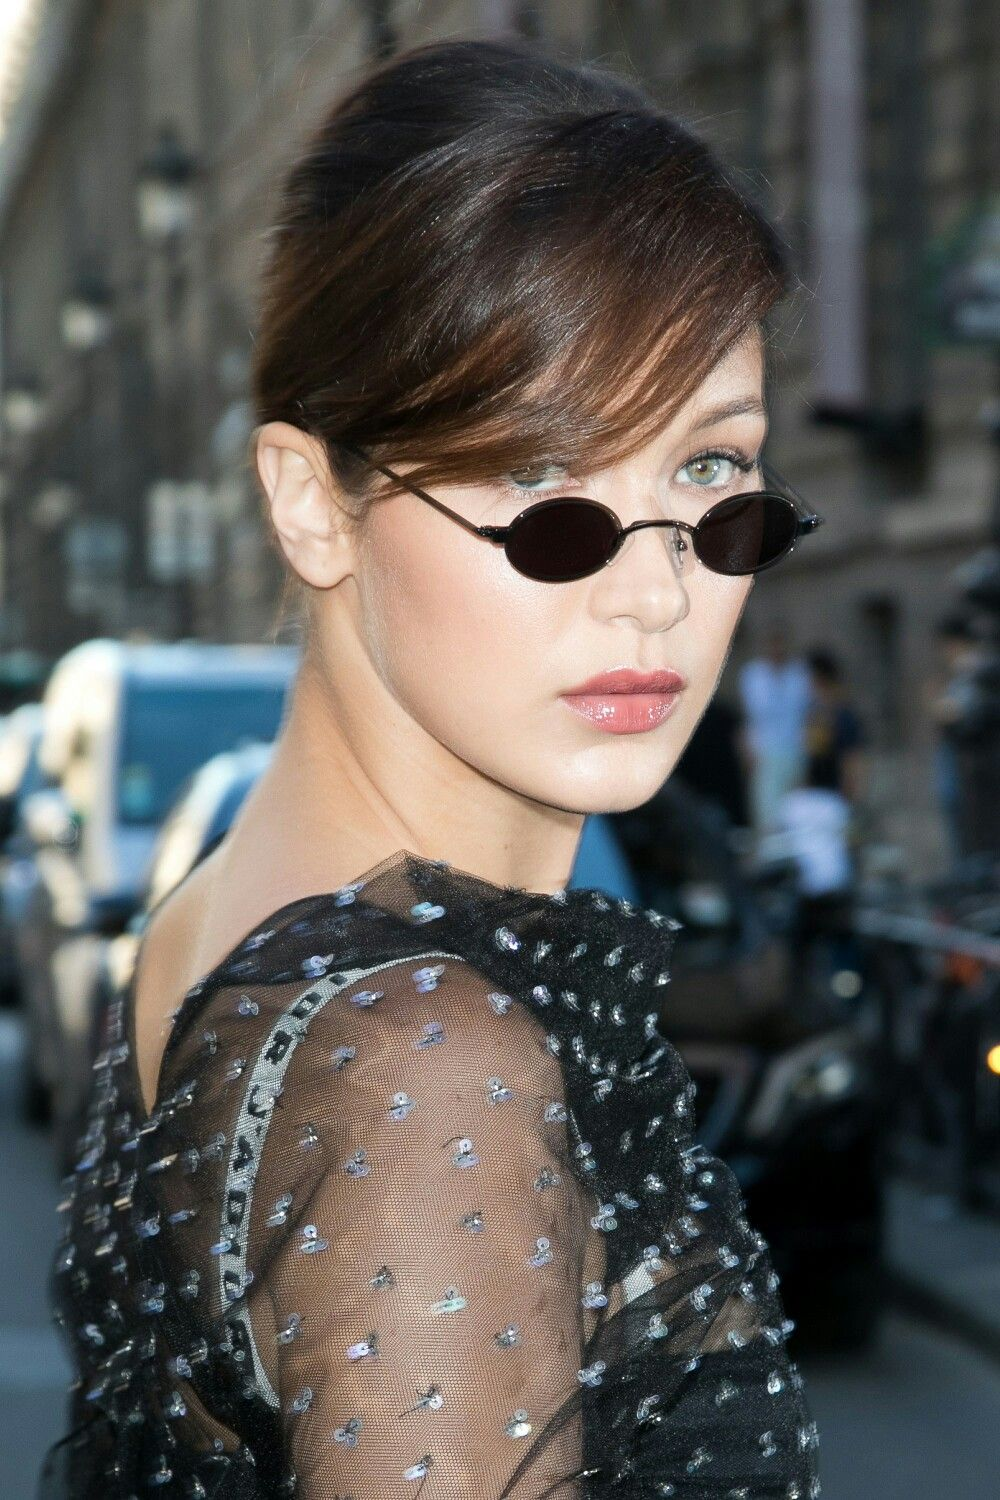 b117d4dcace8 How Tiny Sunglasses Became Summer 2017 s Biggest Trend - Vogue ...